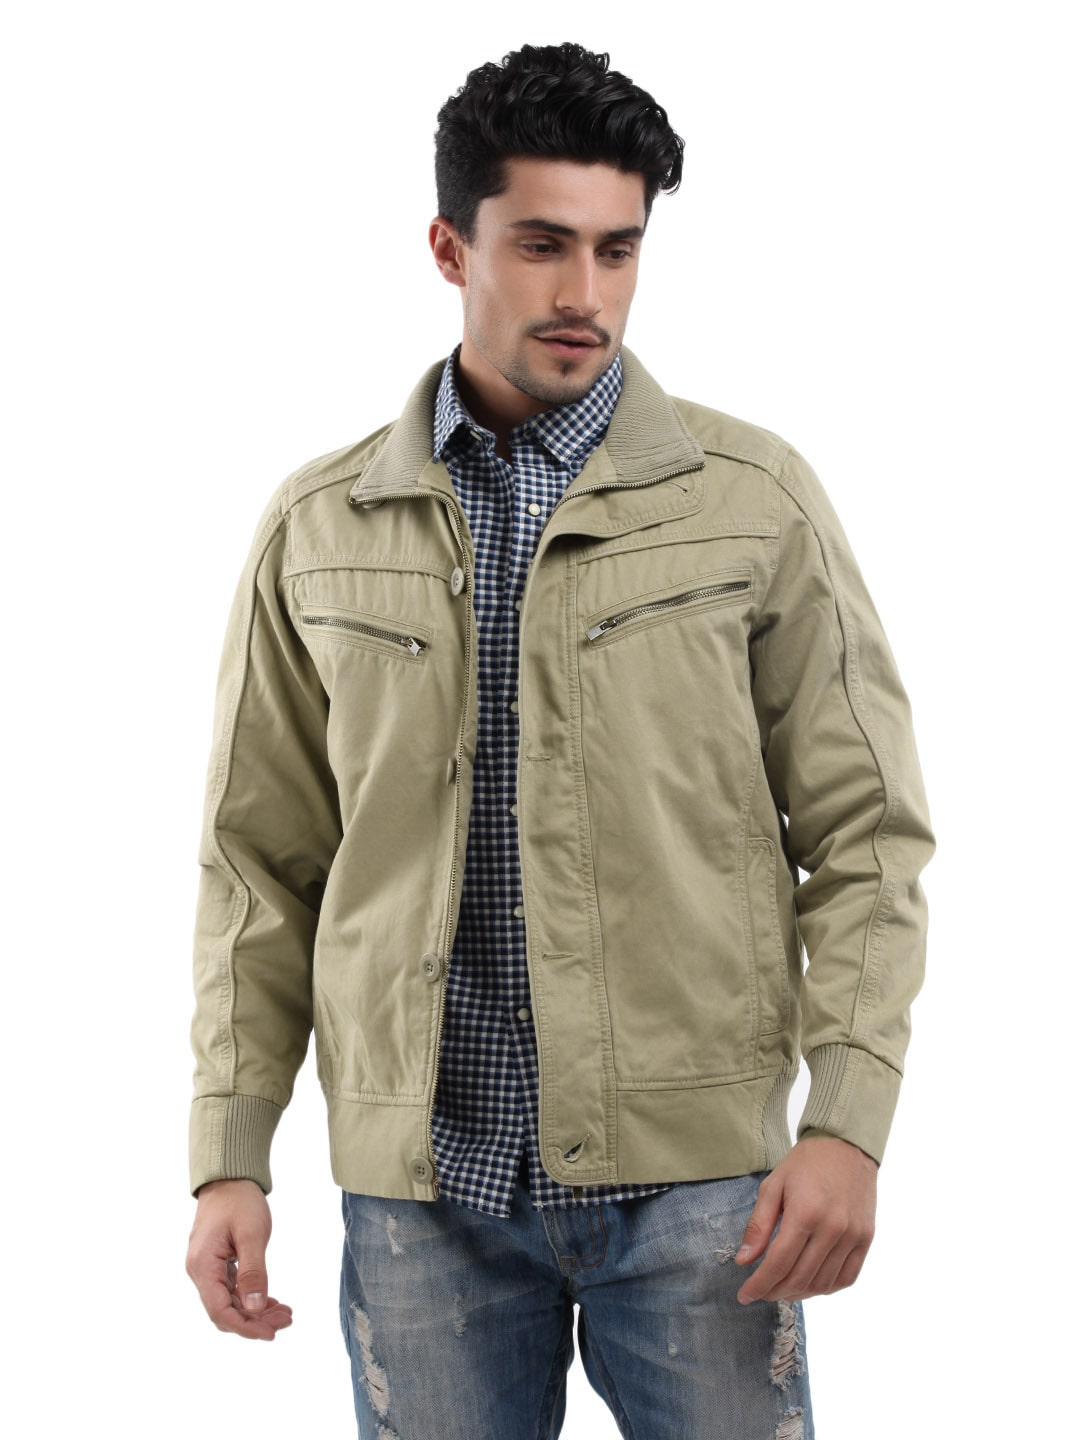 80a4e0bfeaee levis jackets india online